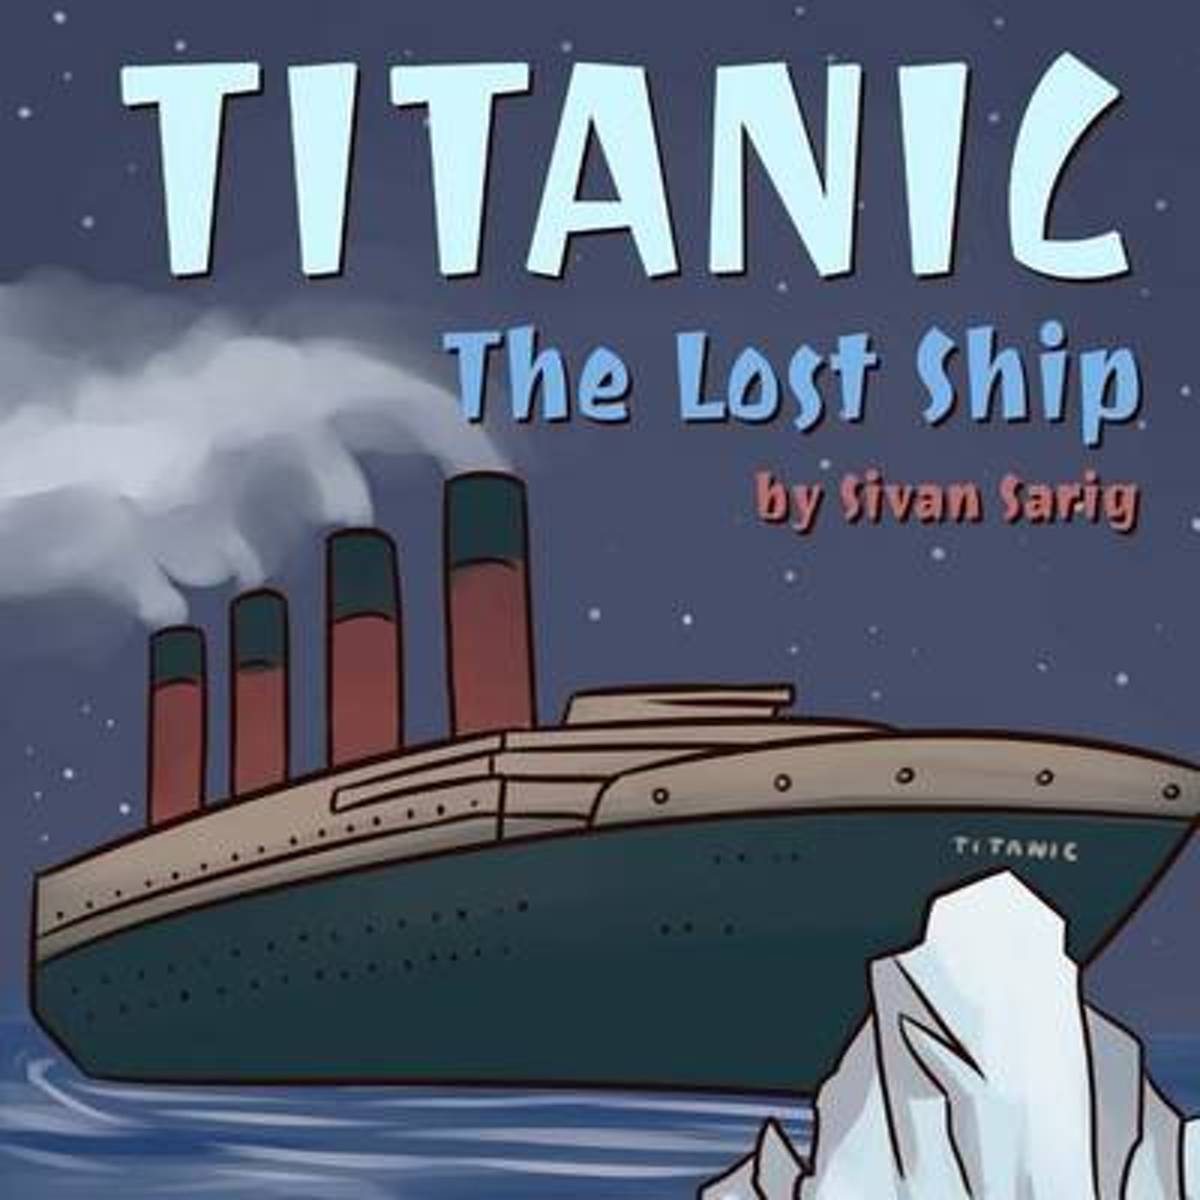 Titanic - The Lost Ship